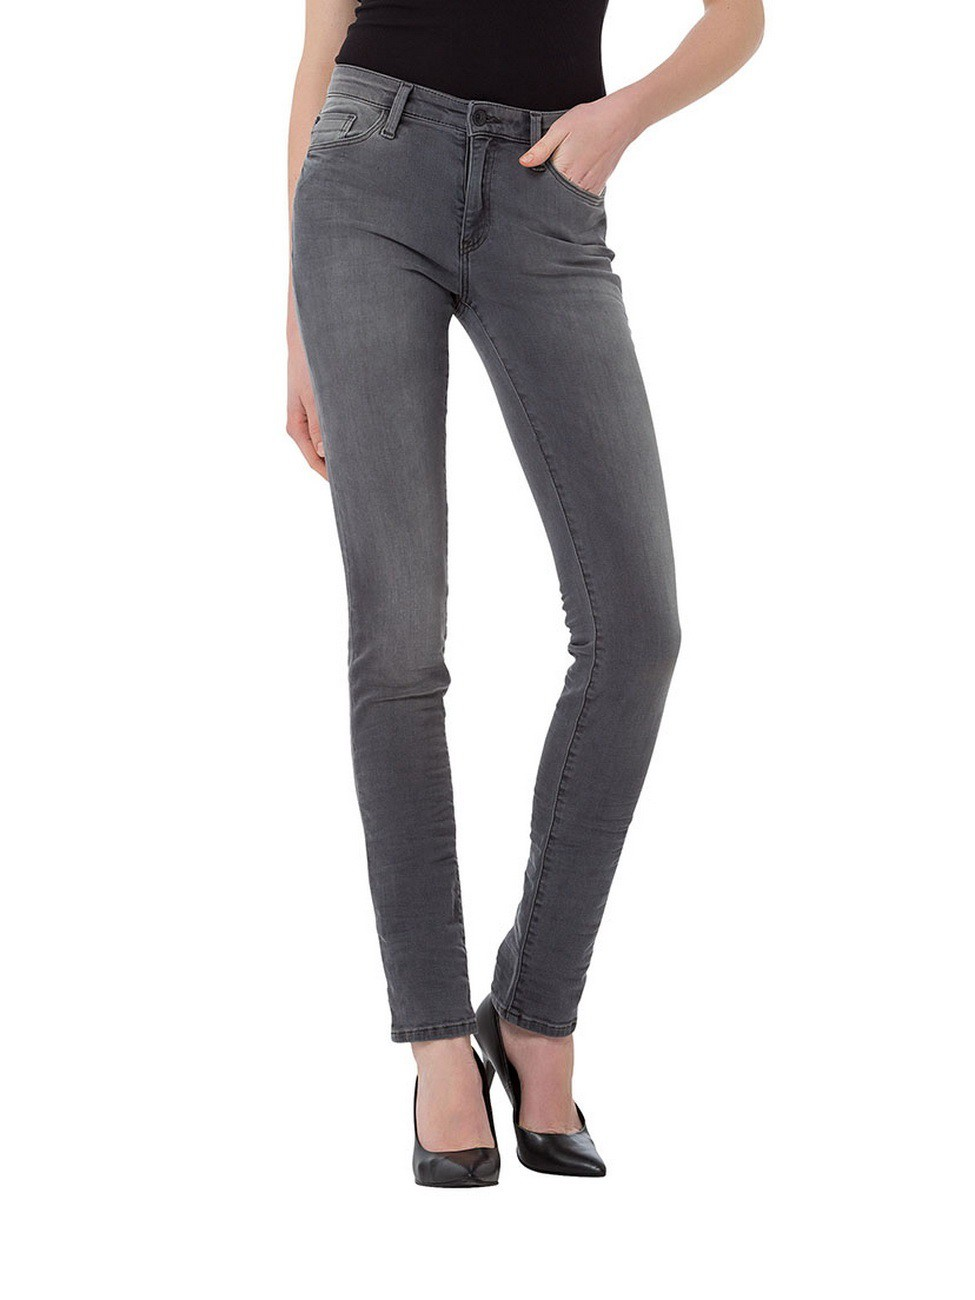 cross damen jeans anya slim fit grau grey ebay. Black Bedroom Furniture Sets. Home Design Ideas